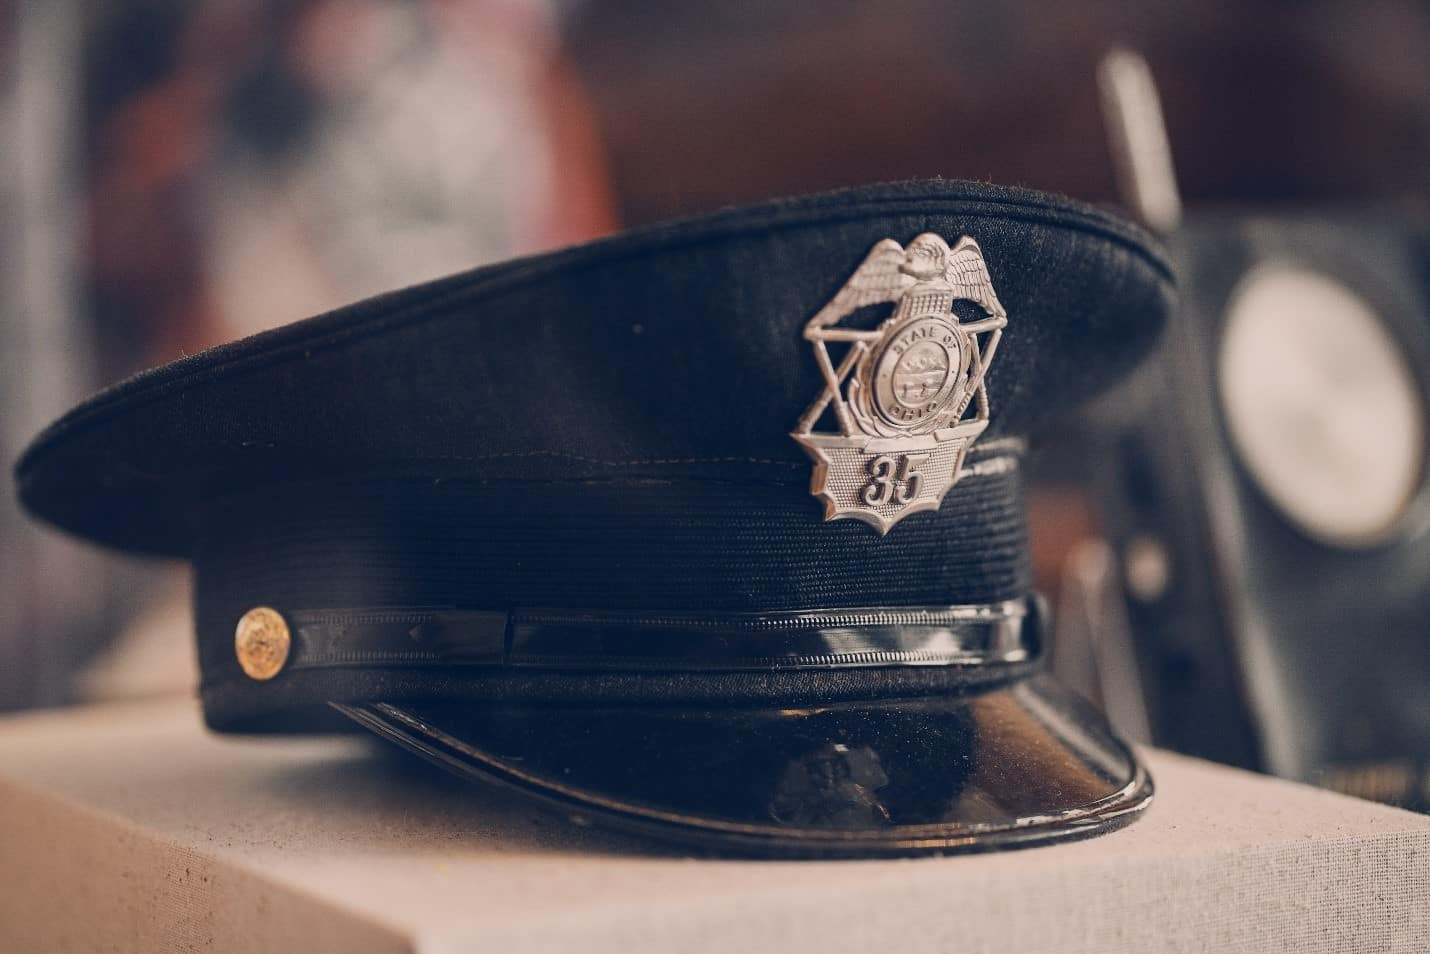 25 Appreciation Gifts for Police Officers to Thank Them for Their Service